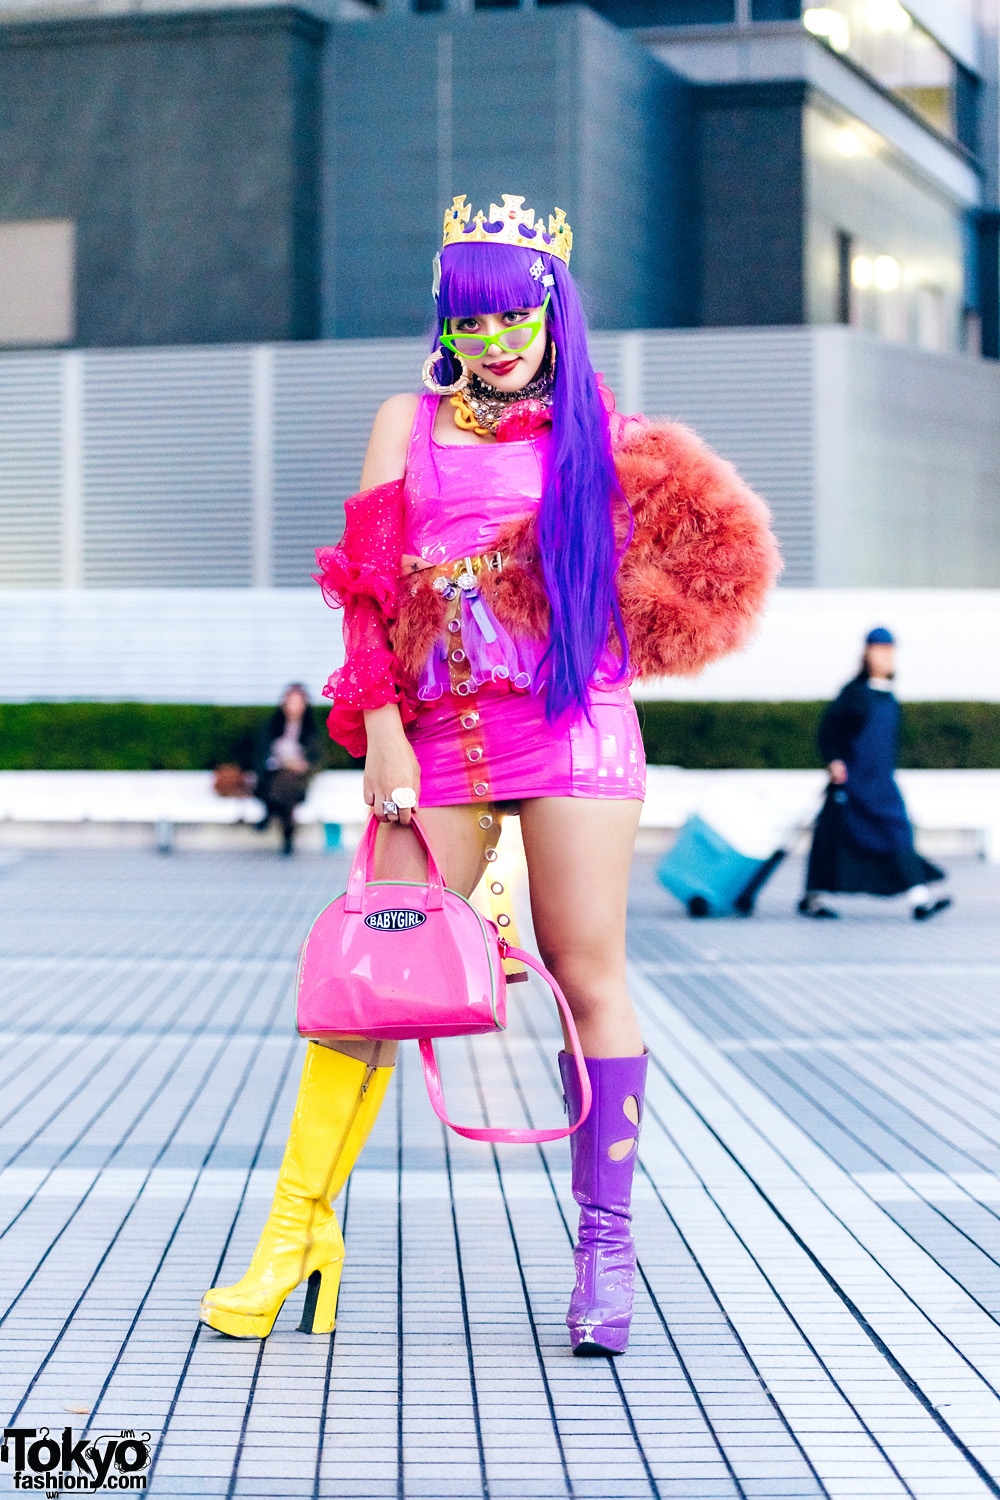 Colorful Tokyo Street Fashion w/ Purple Hair, Gold Crown, Vinyl Mini Dress, Gallerie & Office Kiko Patent Boots